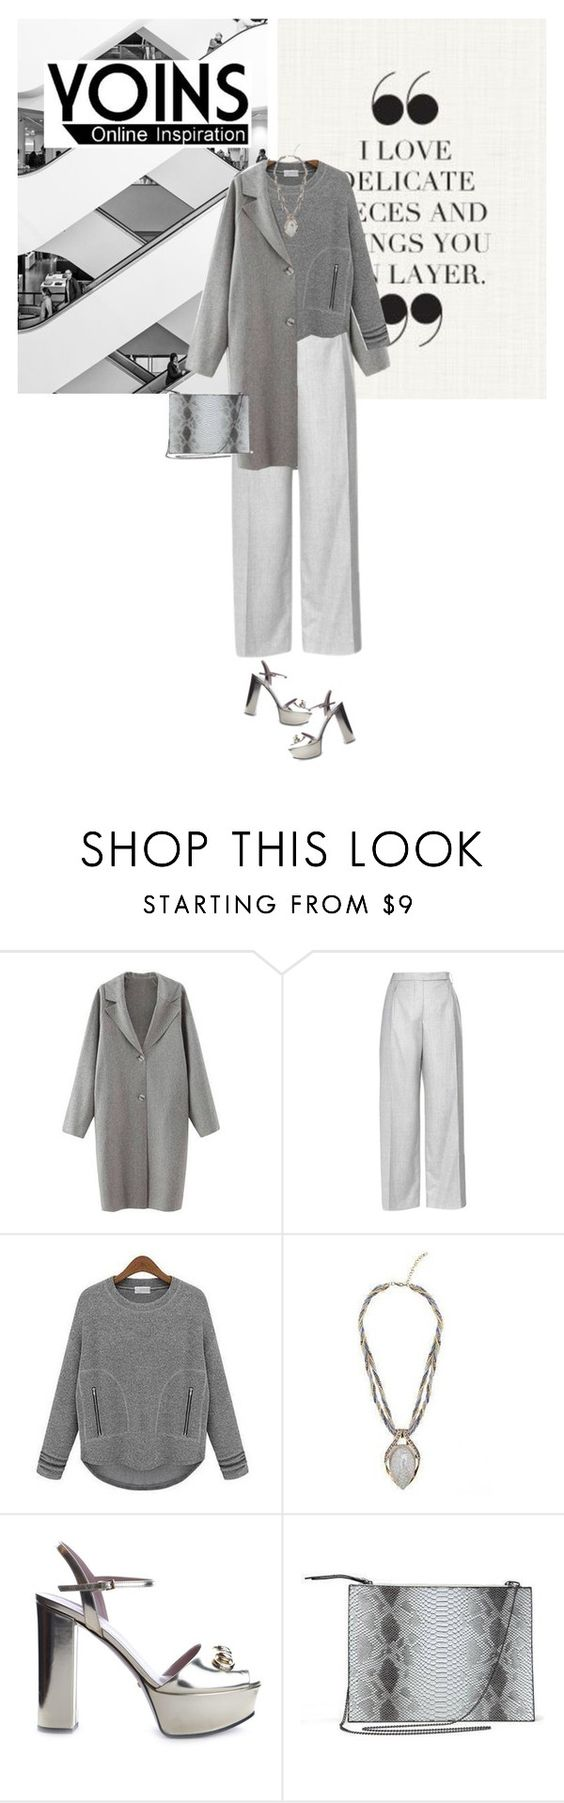 """Untitled #588"" by tamara-40 ❤ liked on Polyvore featuring Carven, Gucci, women's clothing, women's fashion, women, female, woman, misses, juniors and fashionset"